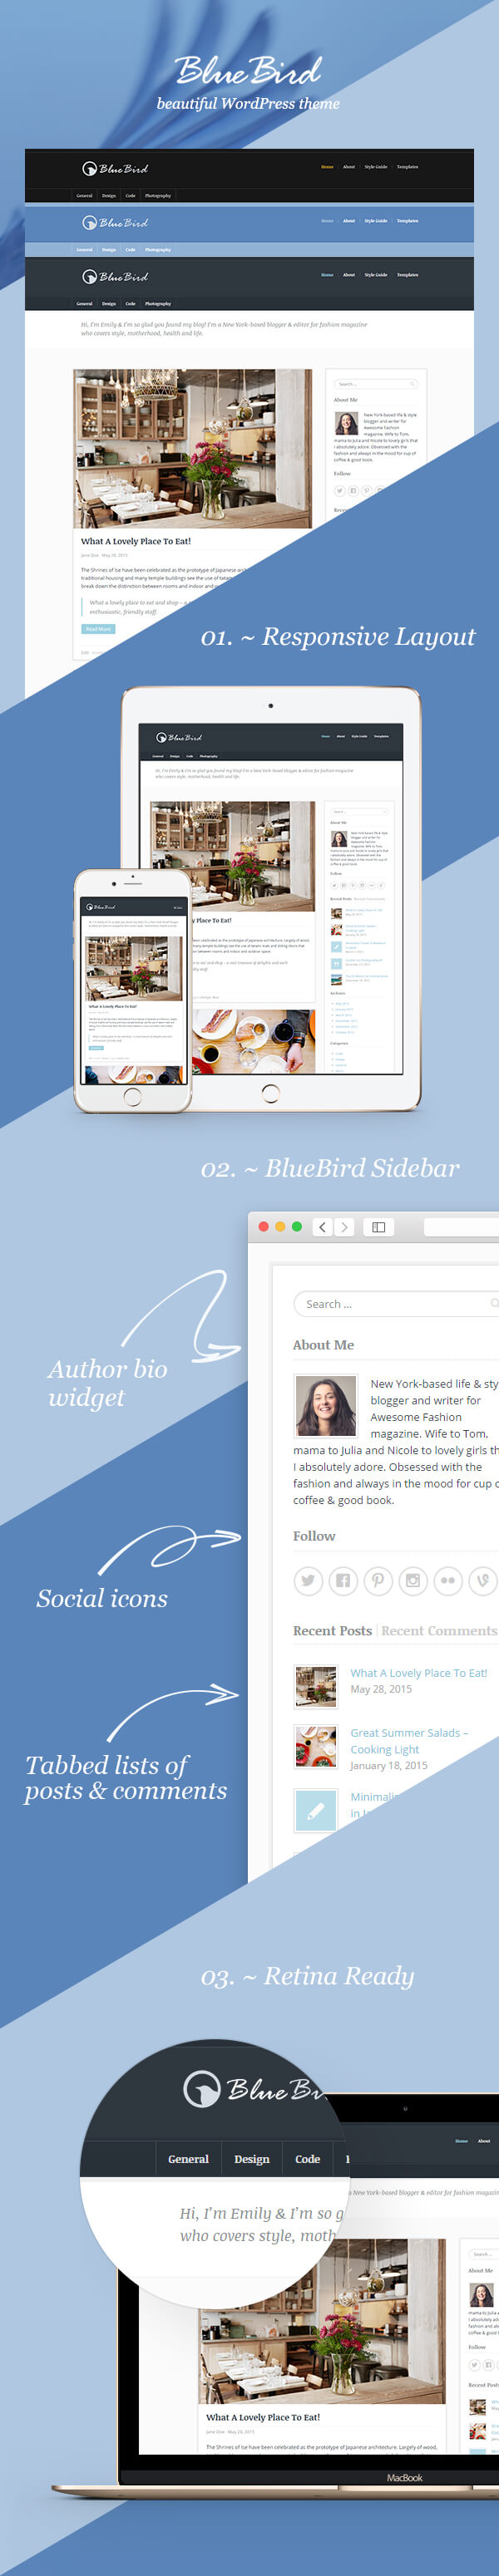 wordpress subcategory template - bluebird beautiful wordpress theme for personal blog